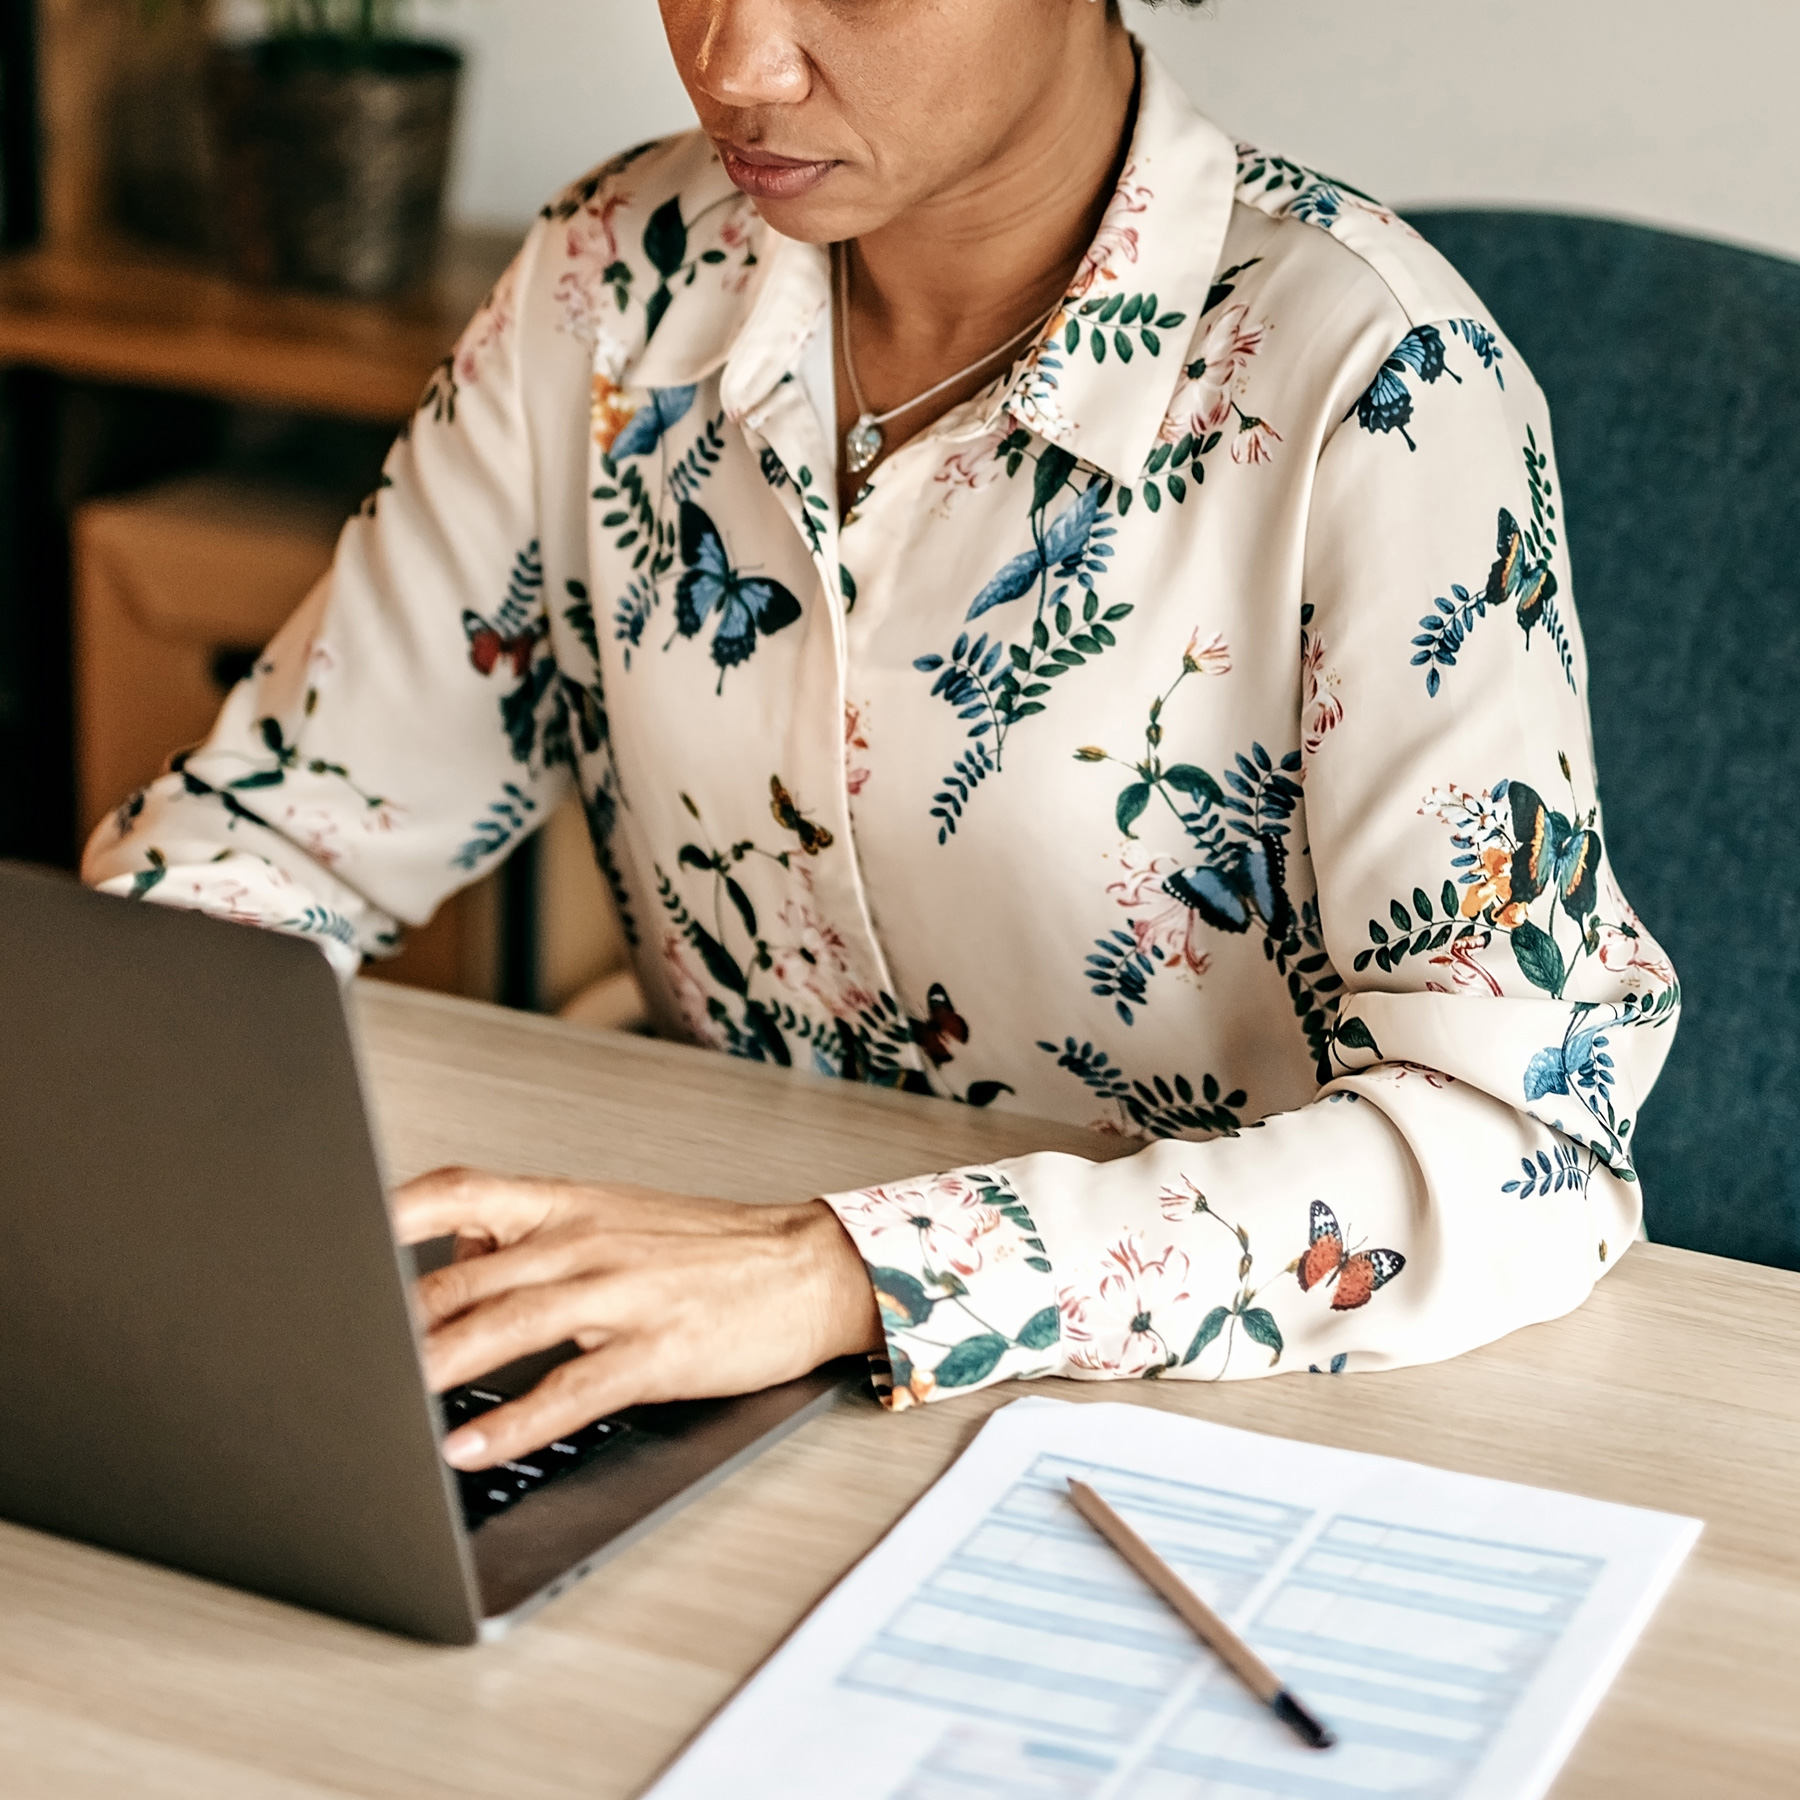 How to break bad habits (procrastinating), woman sitting at desk working on computer